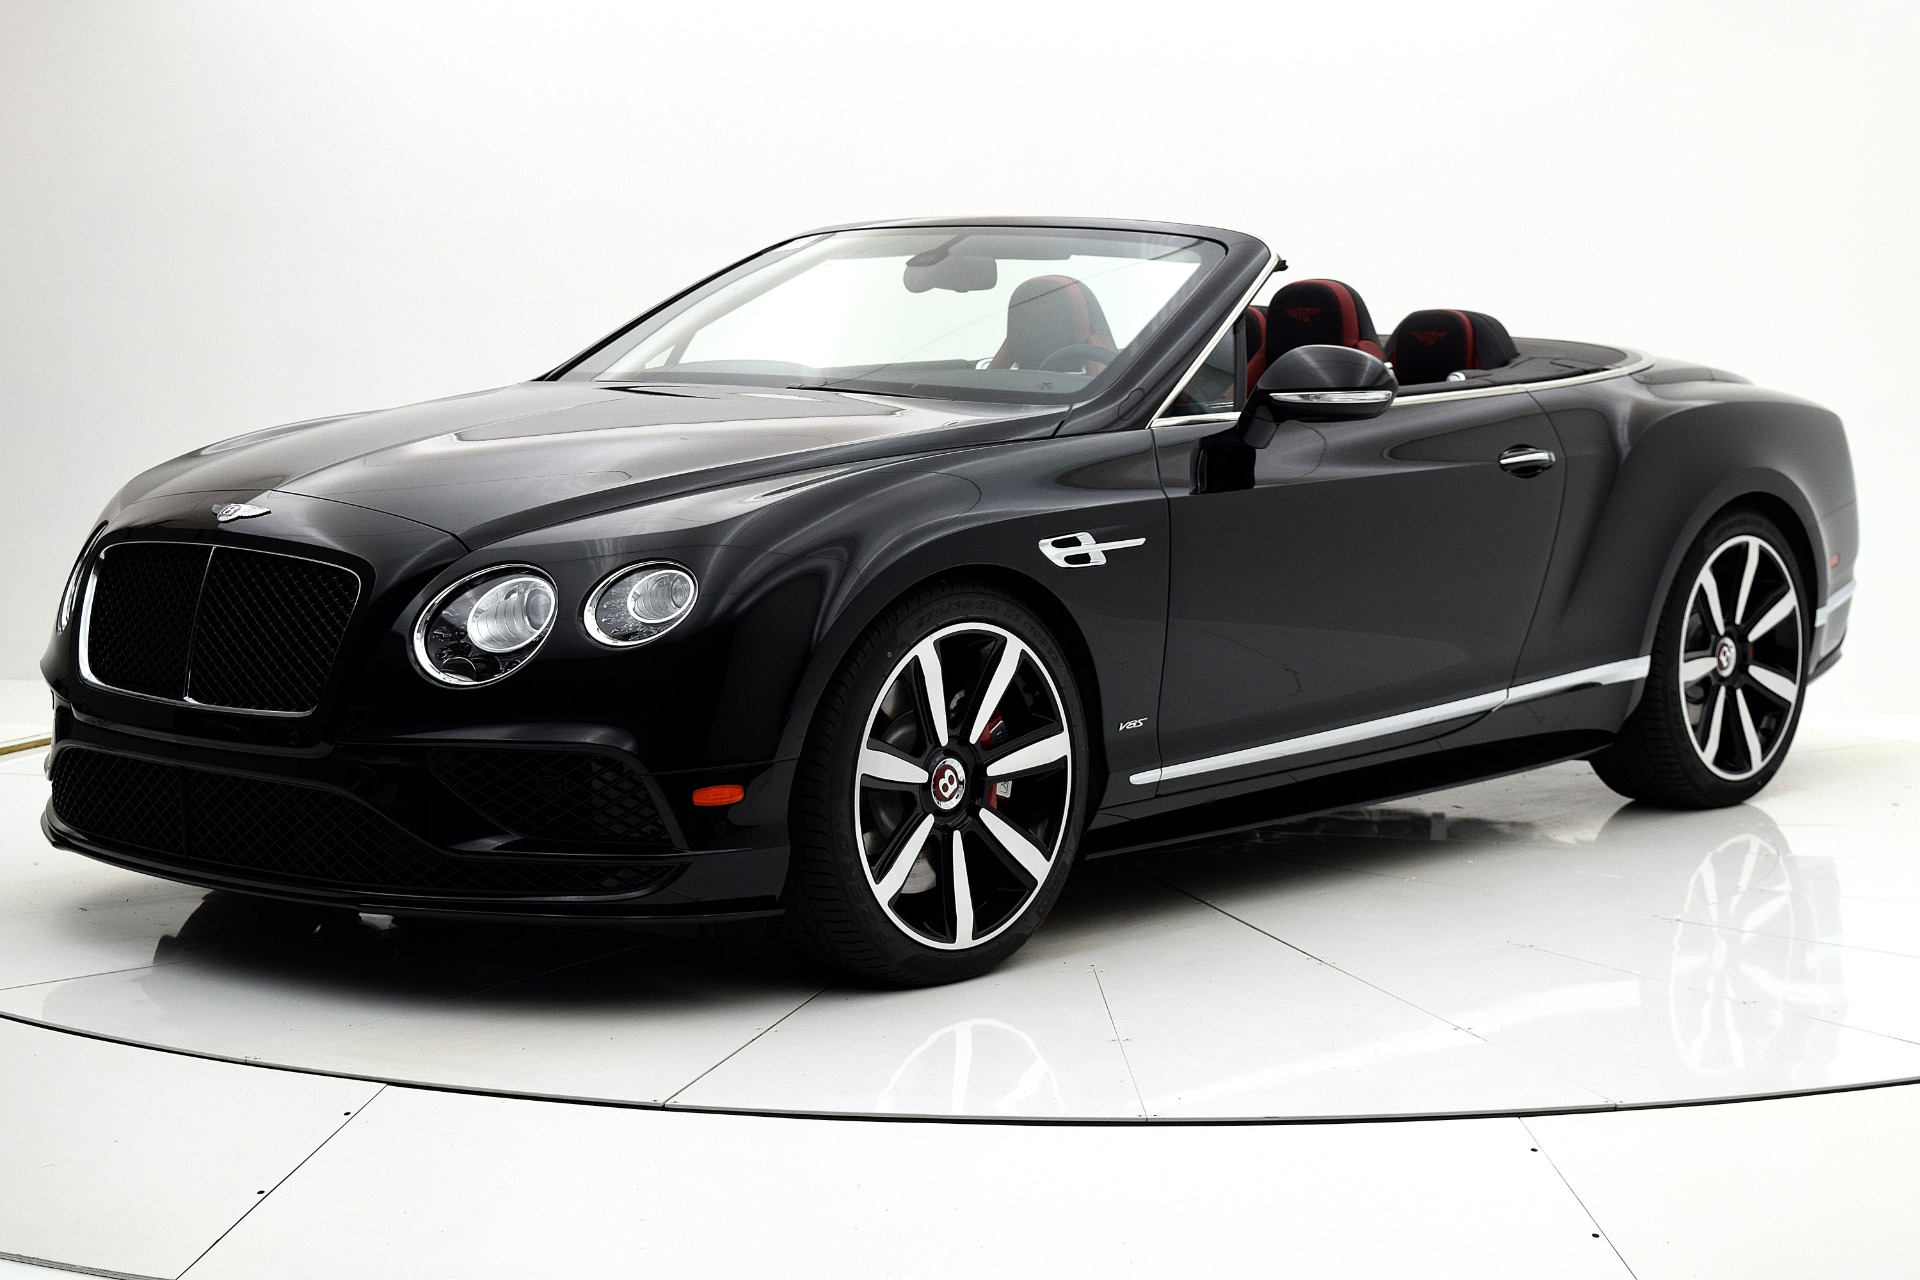 Used 2017 Bentley Continental GT V8 S Convertible for sale $169,880 at F.C. Kerbeck Aston Martin in Palmyra NJ 08065 2